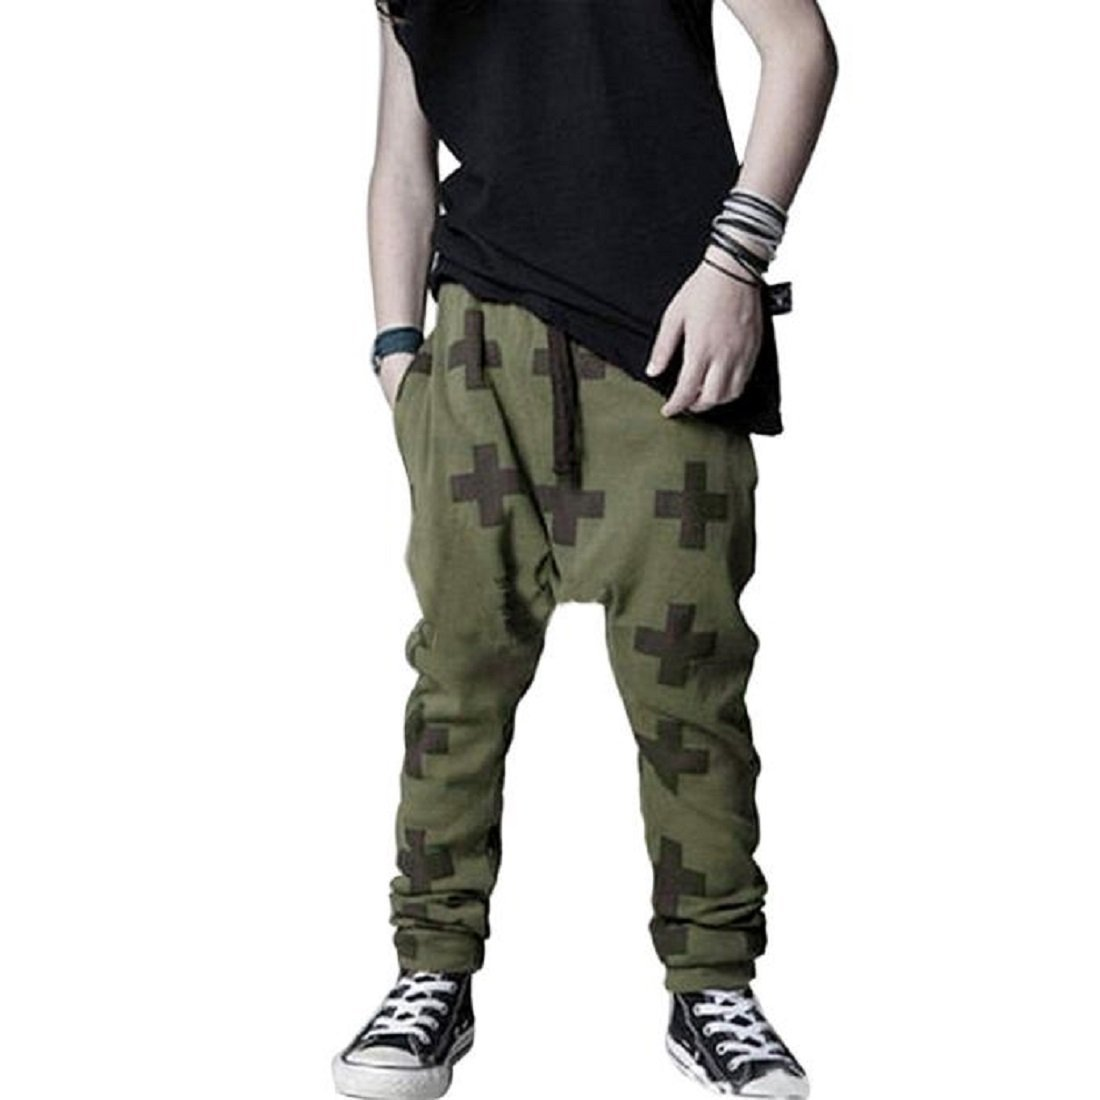 Kids Boys Cross Pattern Harem Pants Casual Sweatpants Baggy (3T, Fleece-lined Army Green)